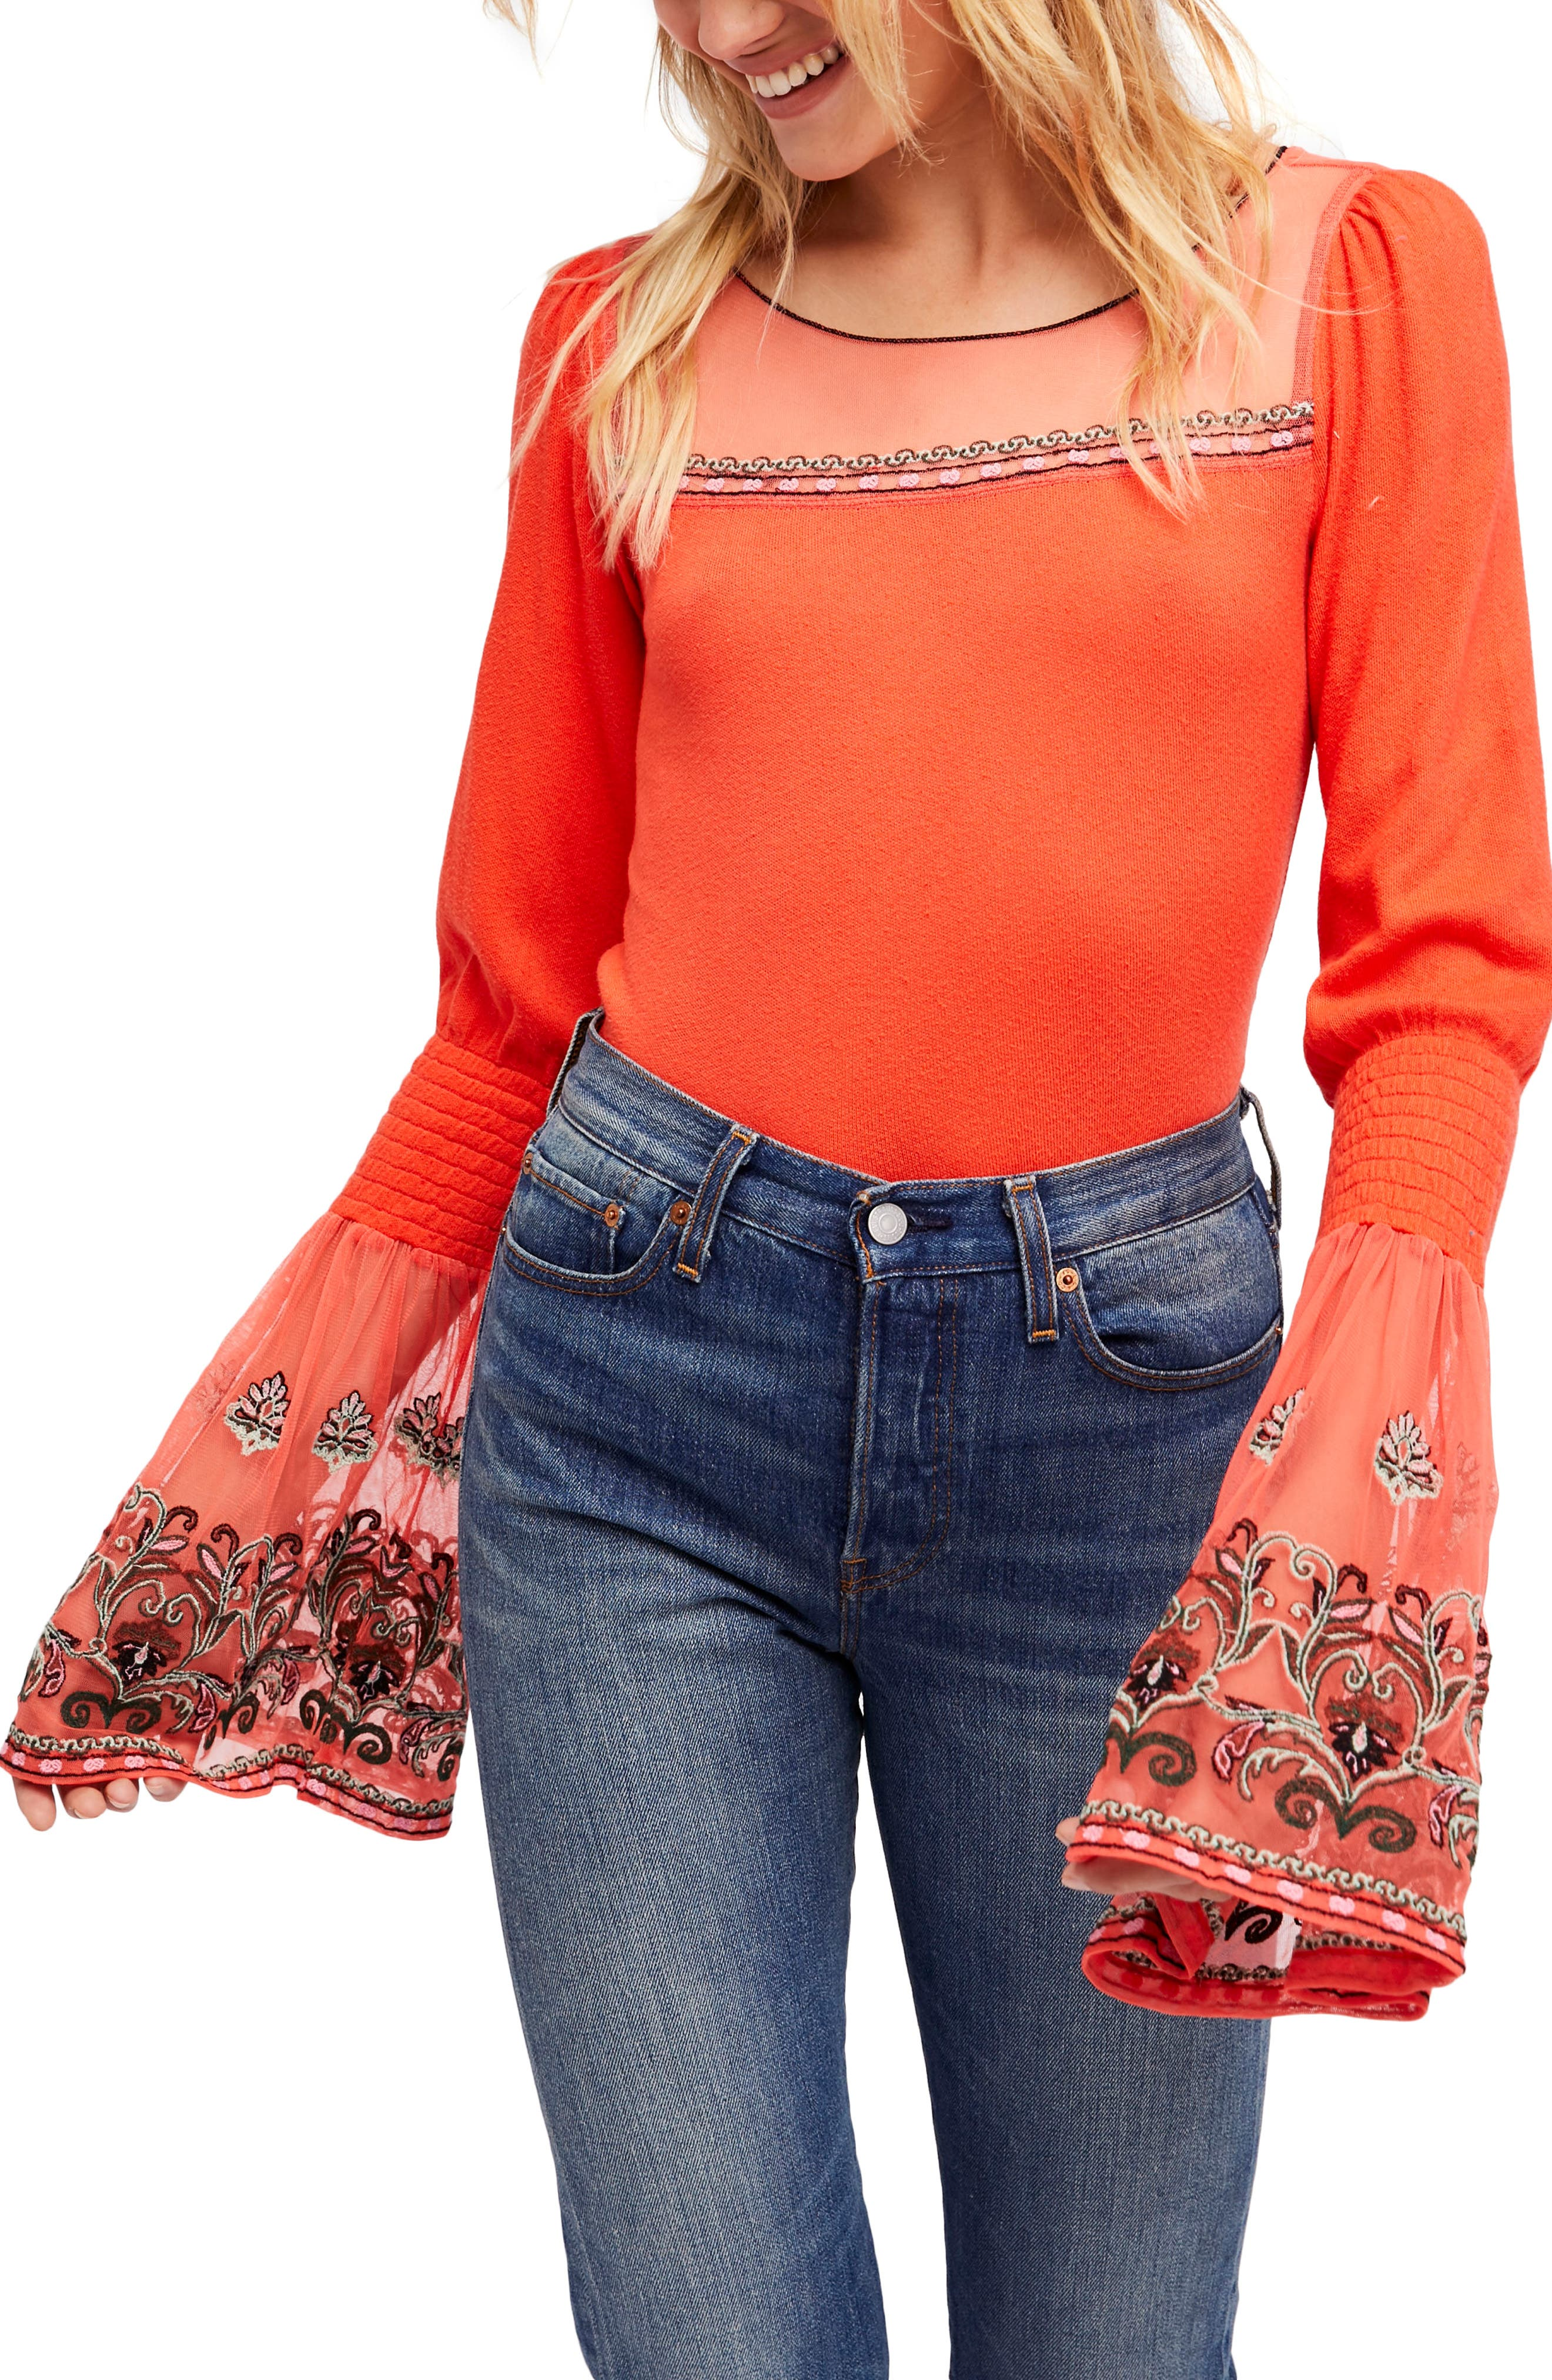 High Tides Top,                         Main,                         color, Red